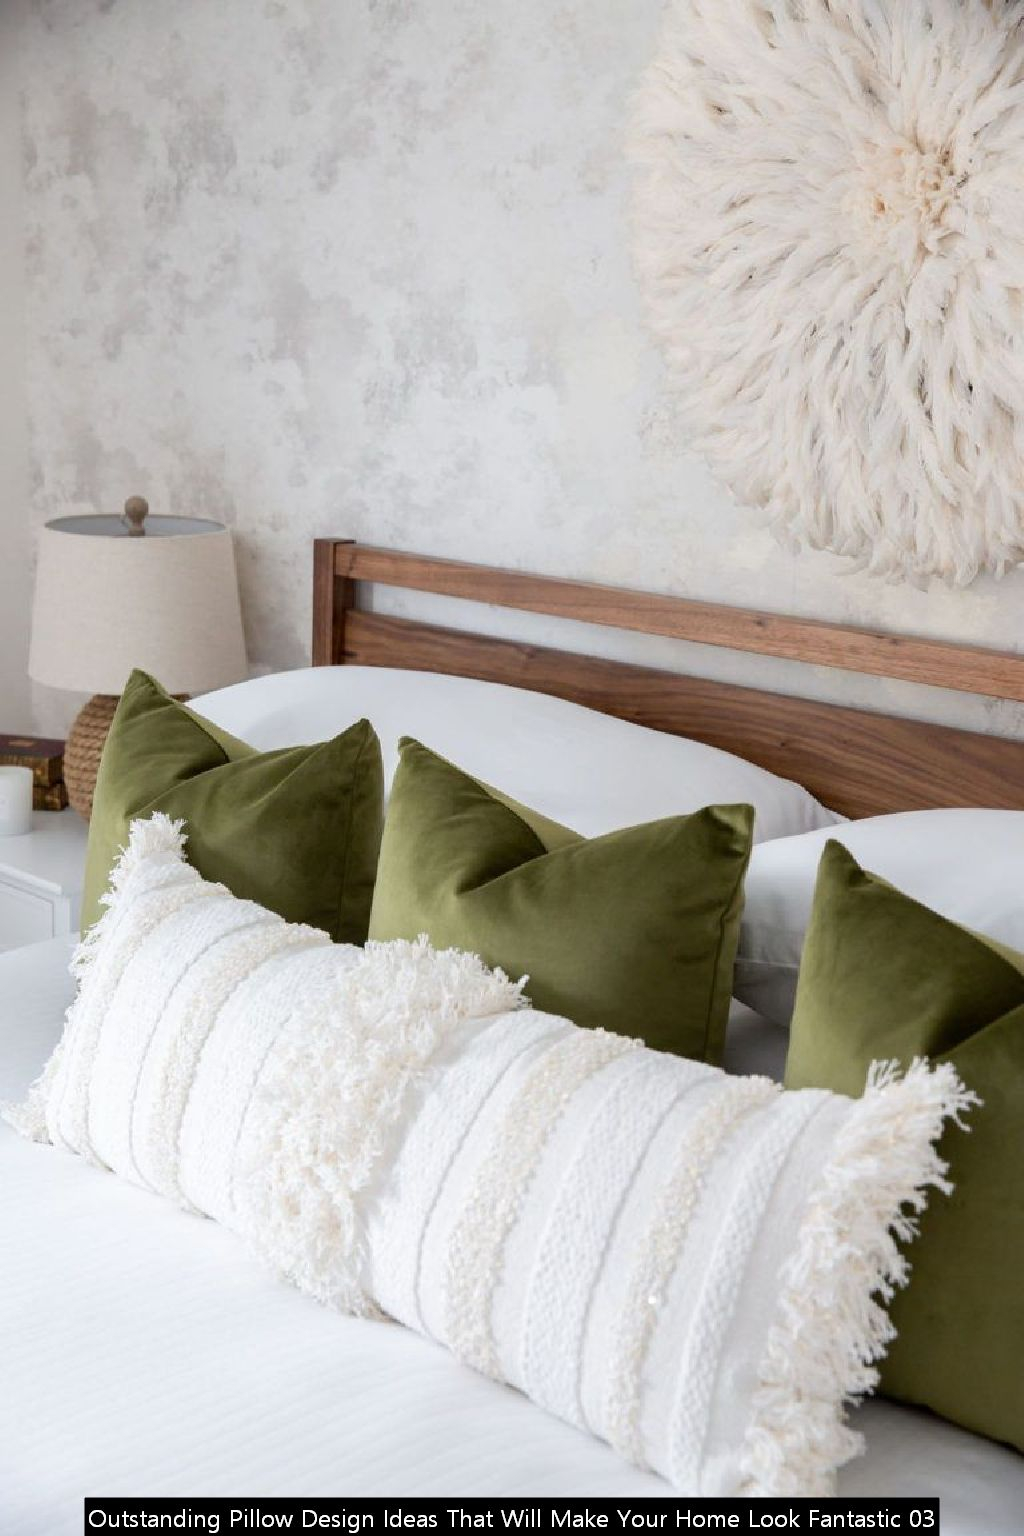 Outstanding Pillow Design Ideas That Will Make Your Home Look Fantastic 03